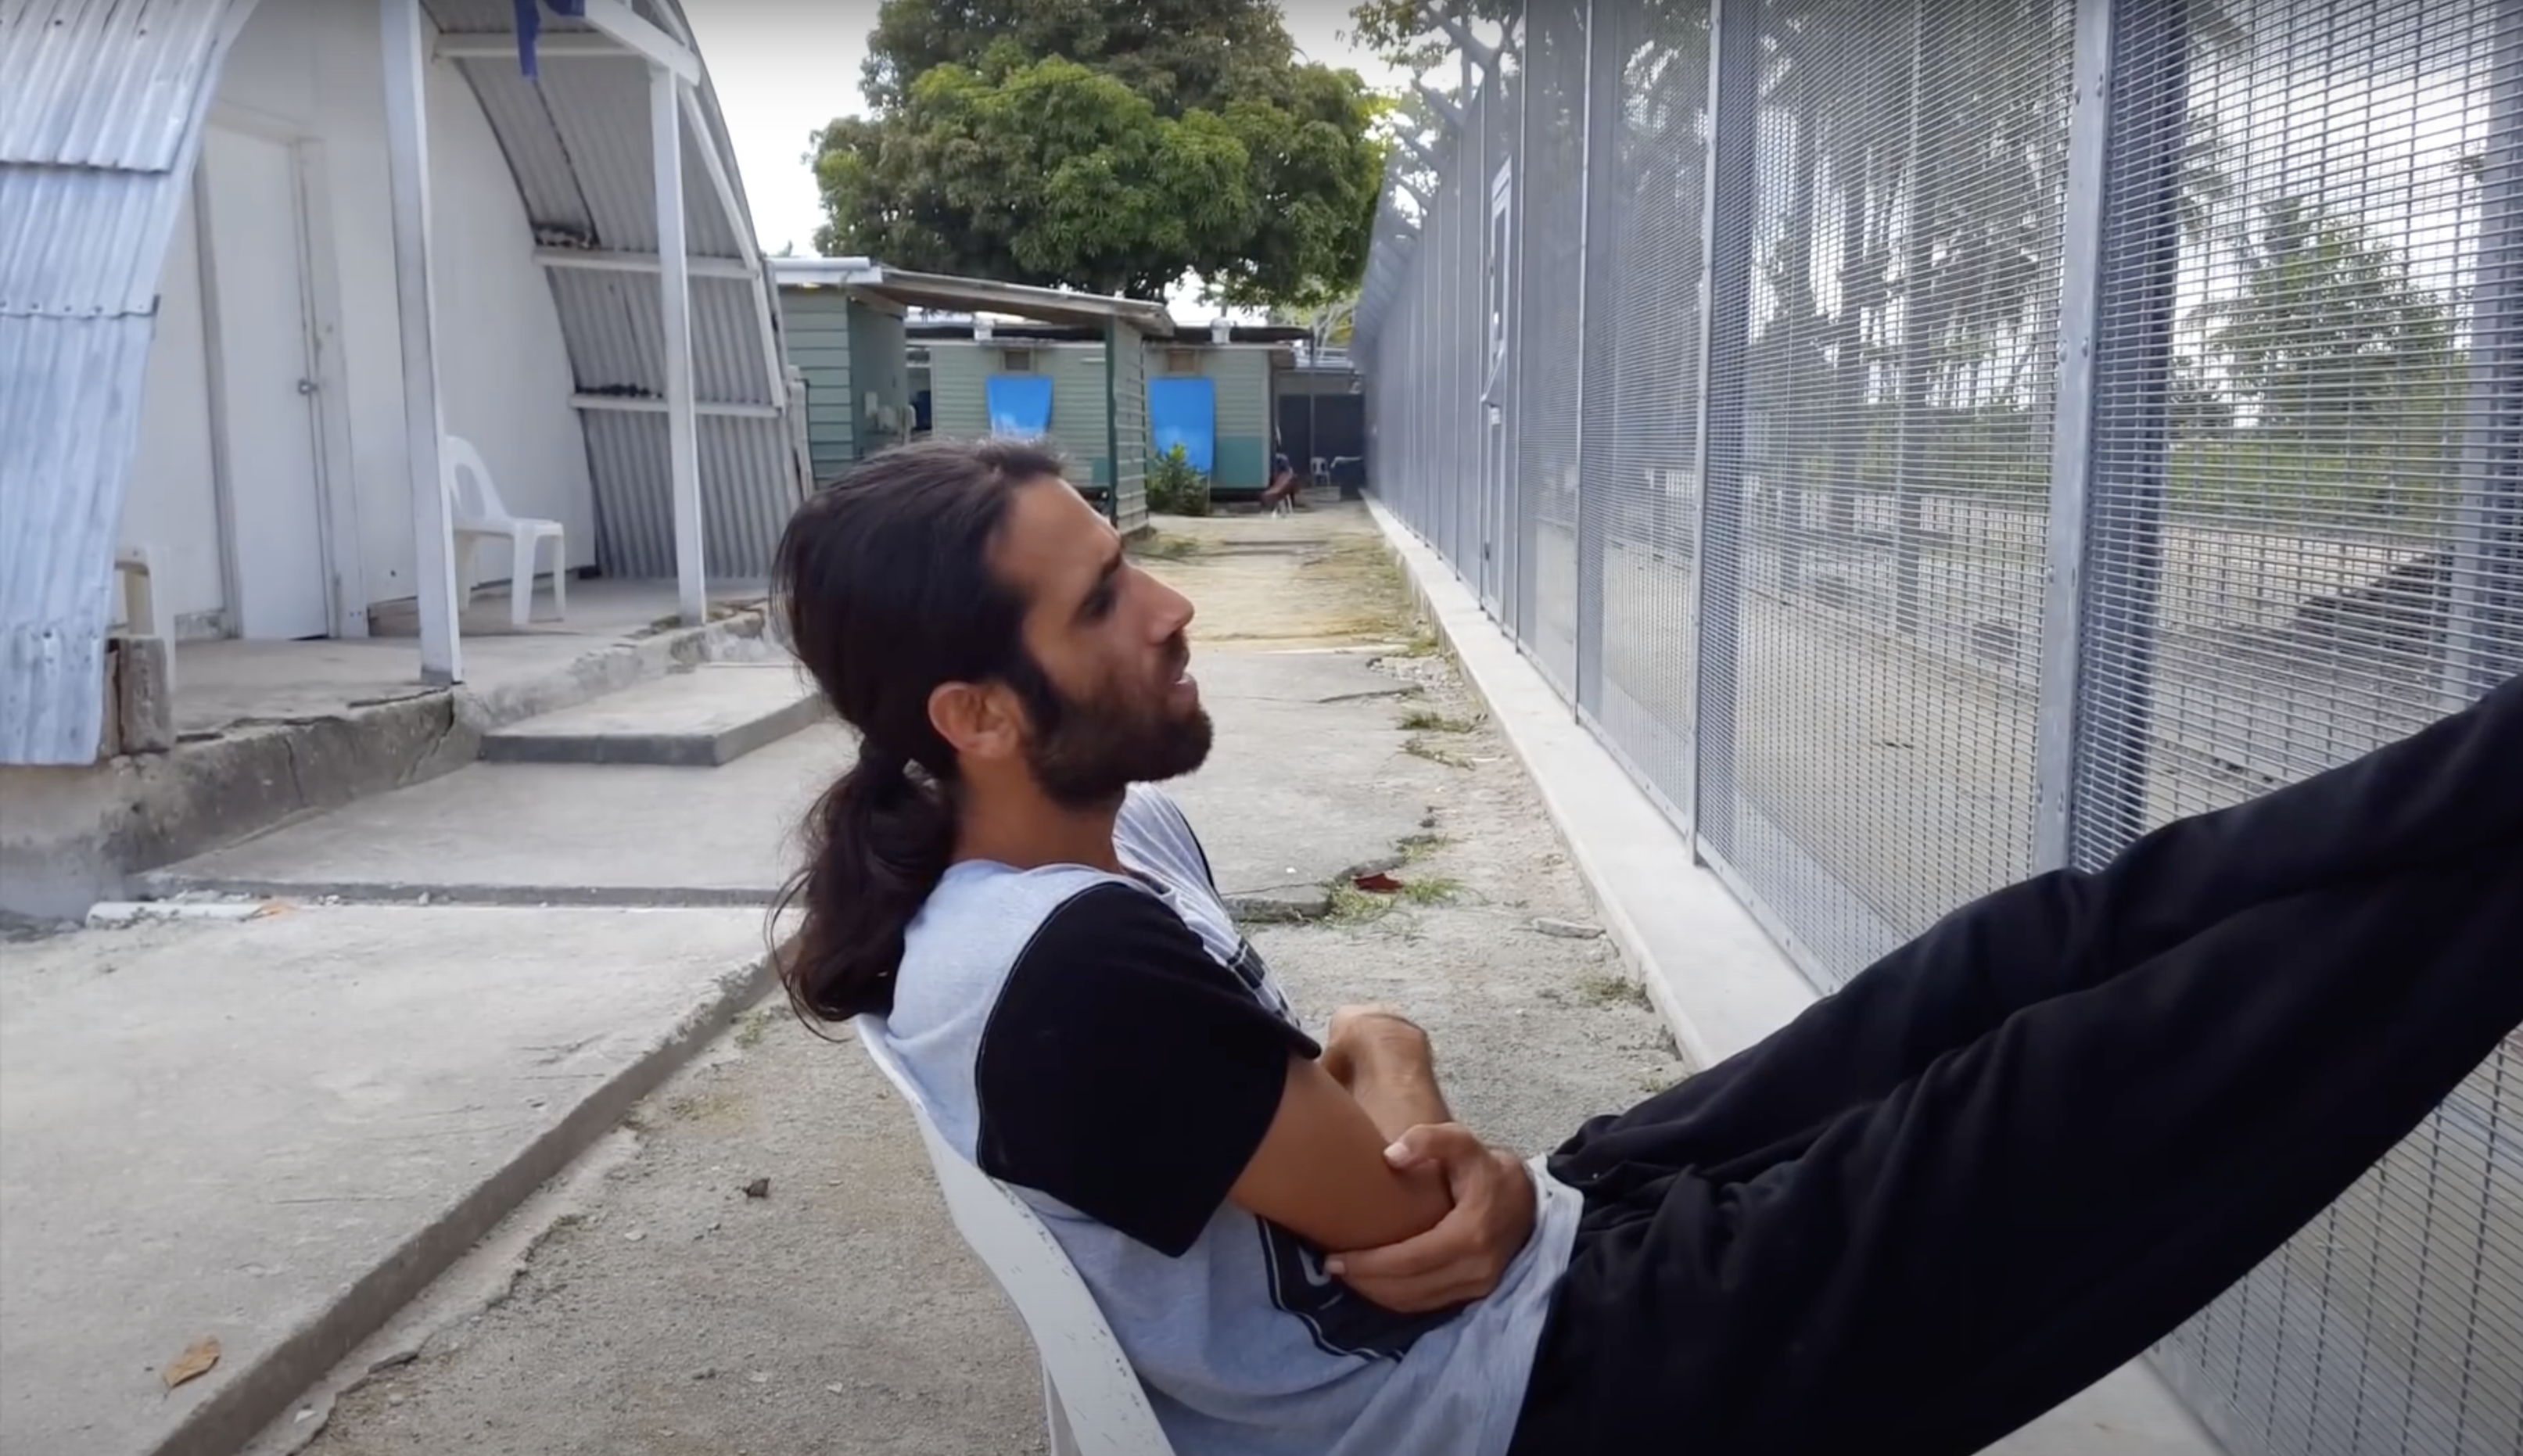 <p>Arash Kamali Sarvestani and Behrouz Boochani, <em>Chauka, Please Tell Us The Time</em> (2017), video still, depicting Behrouz Boochani by the fence at Manus Regional Processing Centre, before its closure and detainees were moved to other facilities on the island.</p>